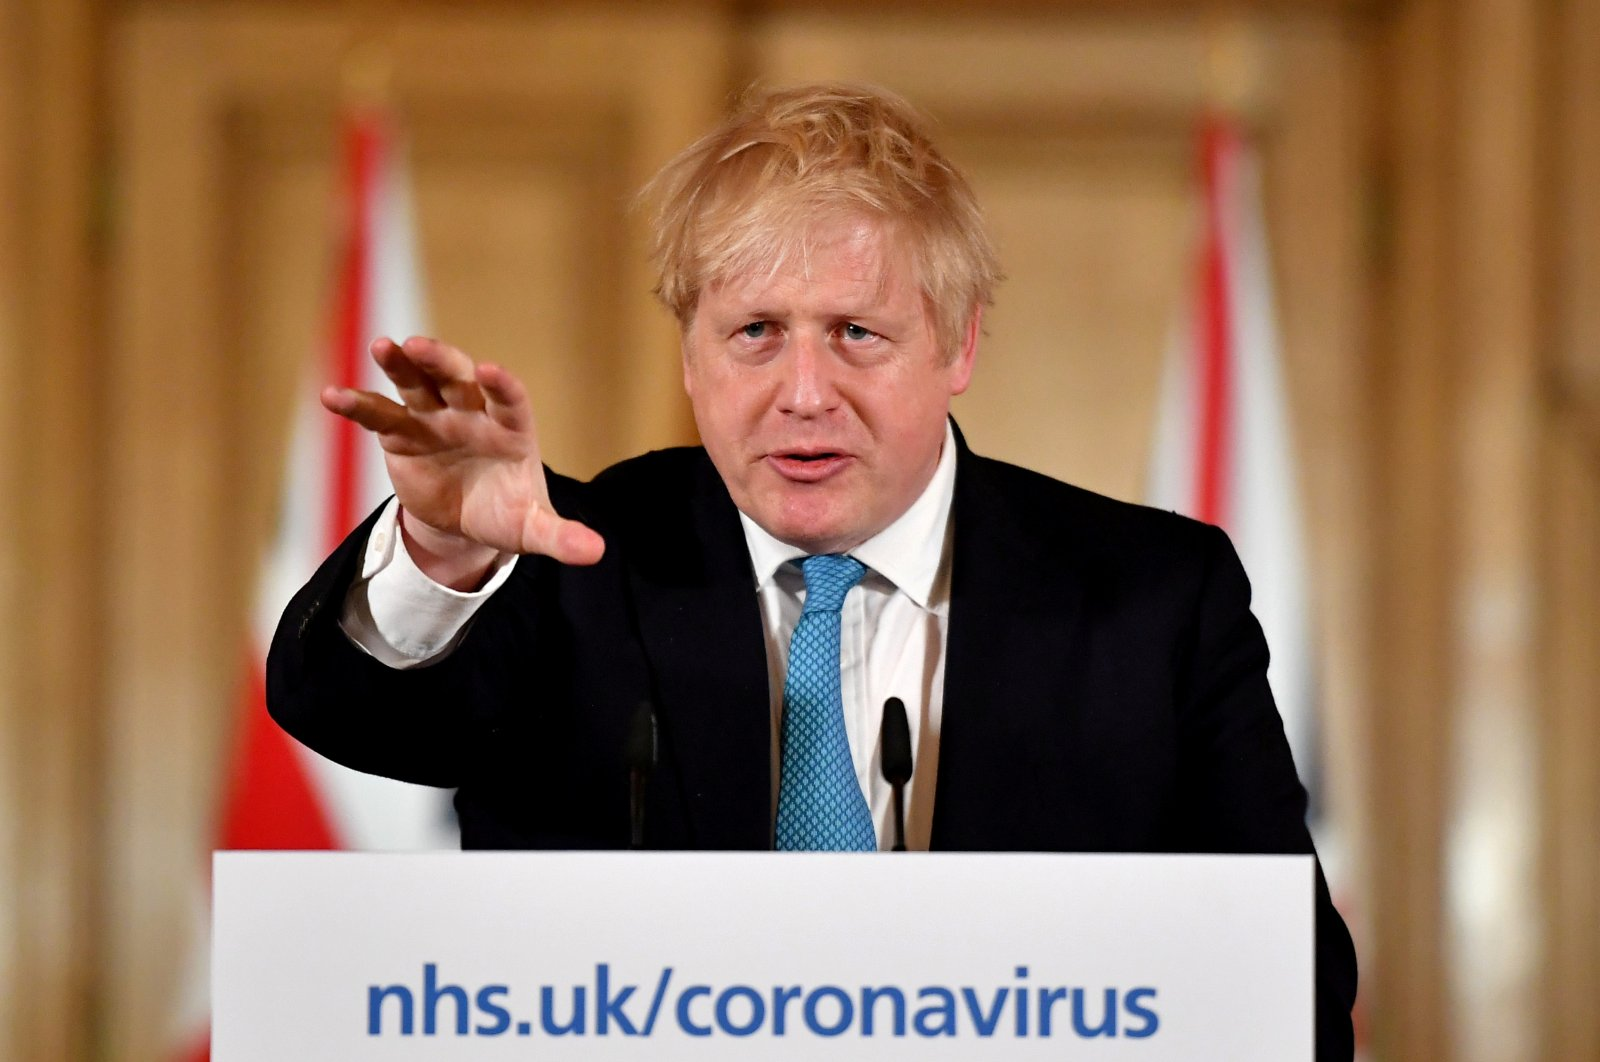 British Prime Minister Boris Johnson gestures as he speaks during a coronavirus-related news conference inside 10 Downing Street, London, Britain, Thursday, March 19, 2020. (Reuters Photo)